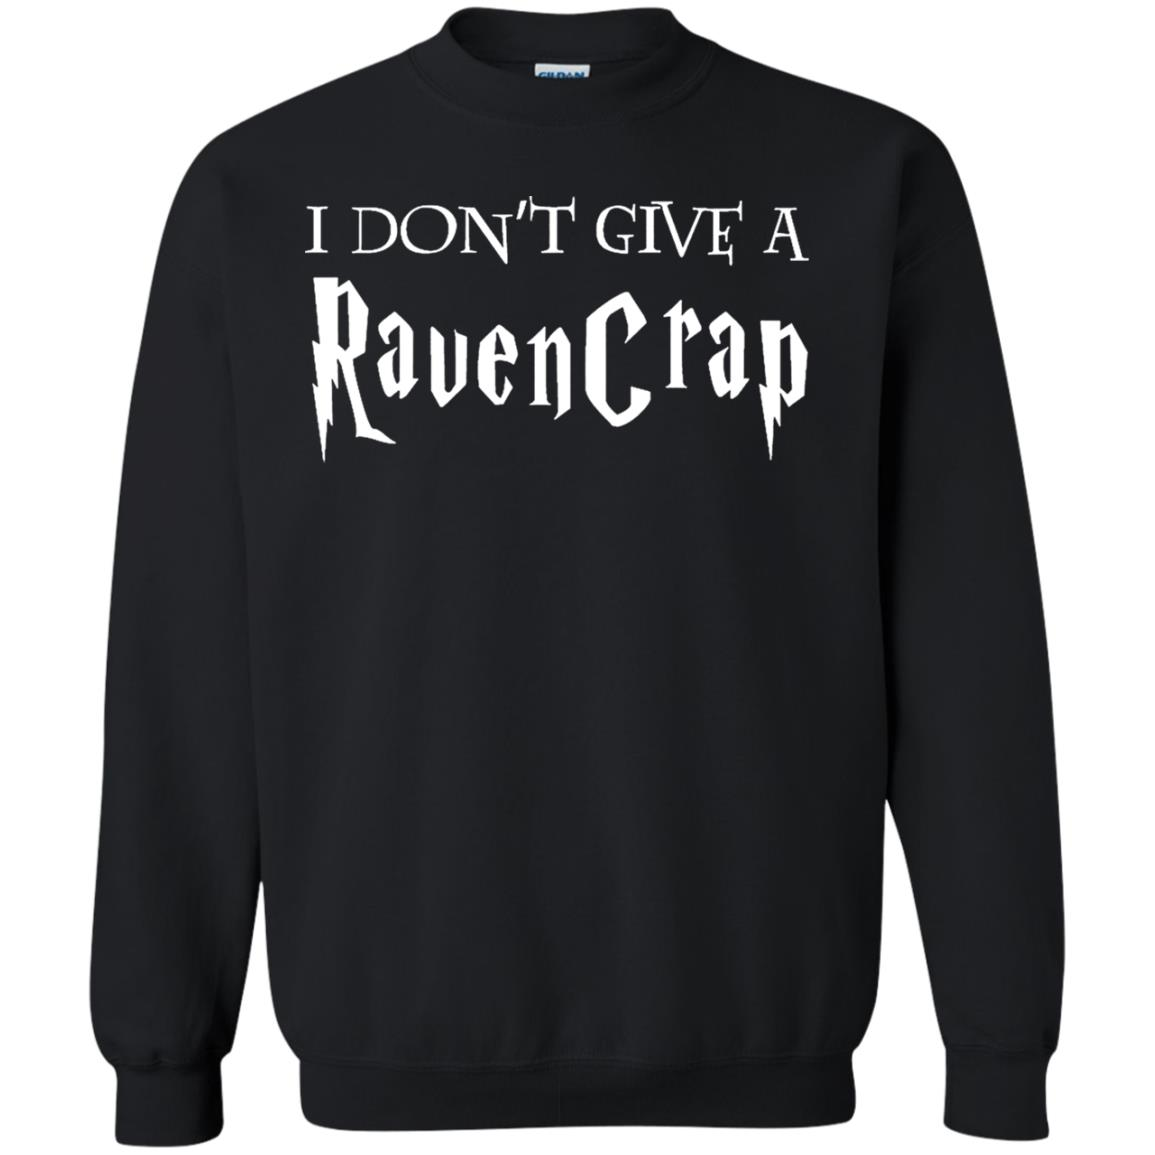 image 692 - Harry Potter: I don't give a Ravencrap shirt & sweater